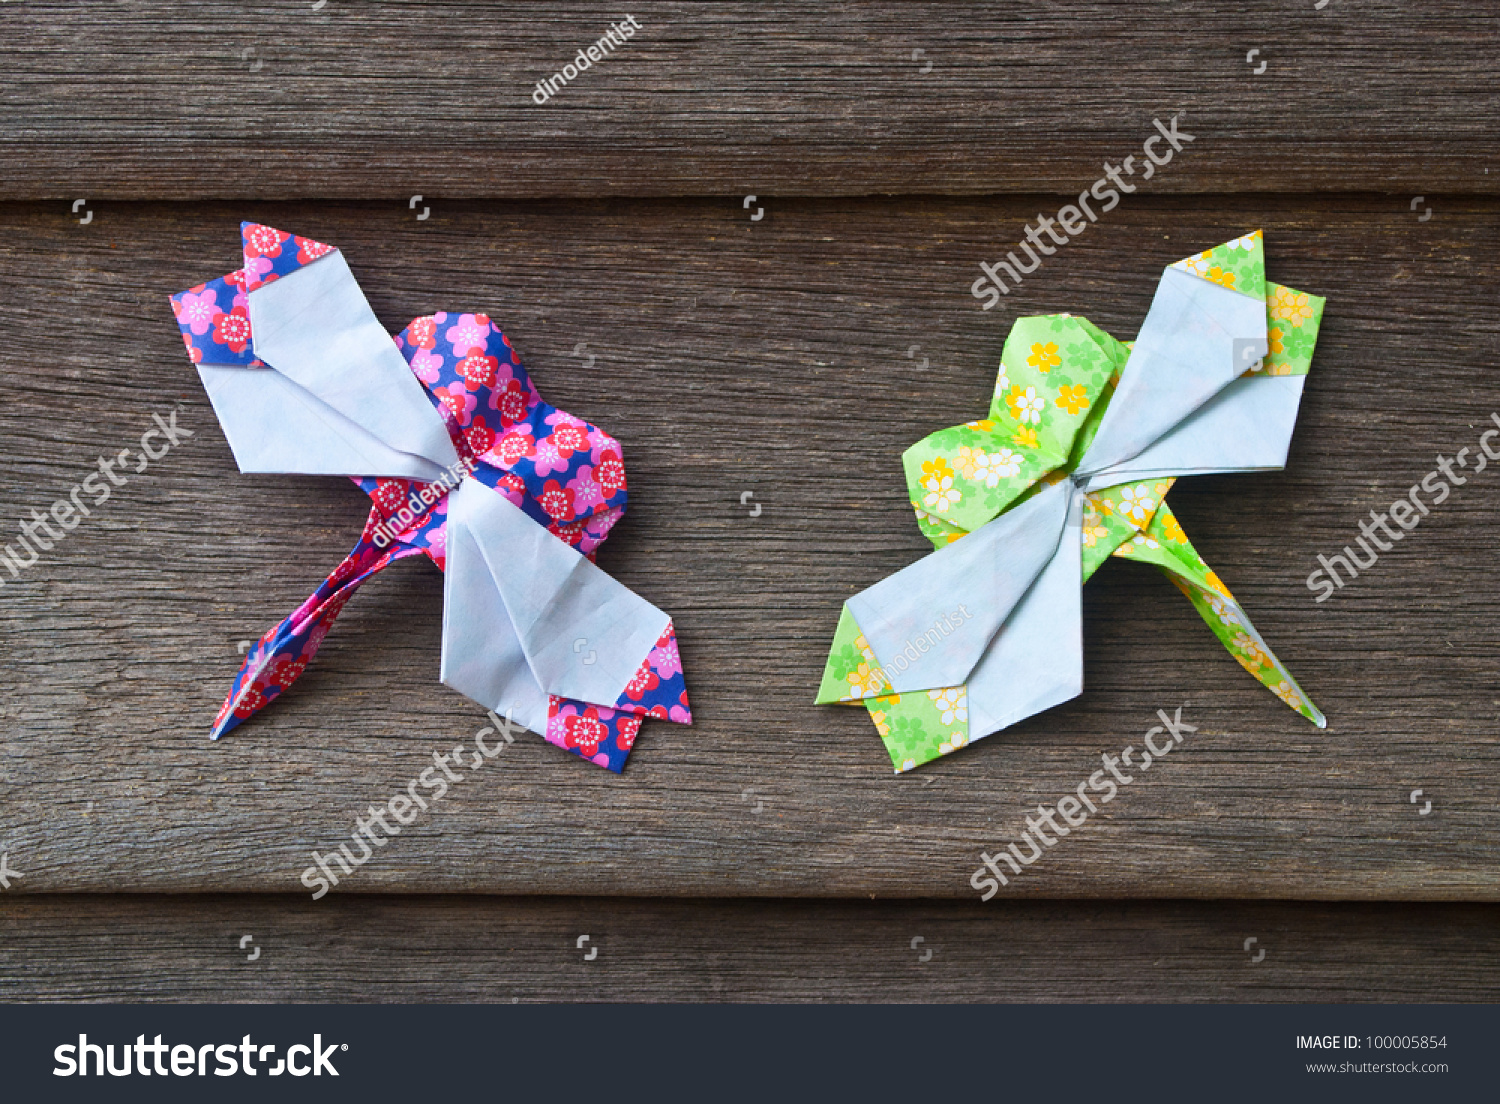 Dragonfly origami on wooden wall stock photo 100005854 shutterstock dragonfly origami on wooden wall jeuxipadfo Image collections